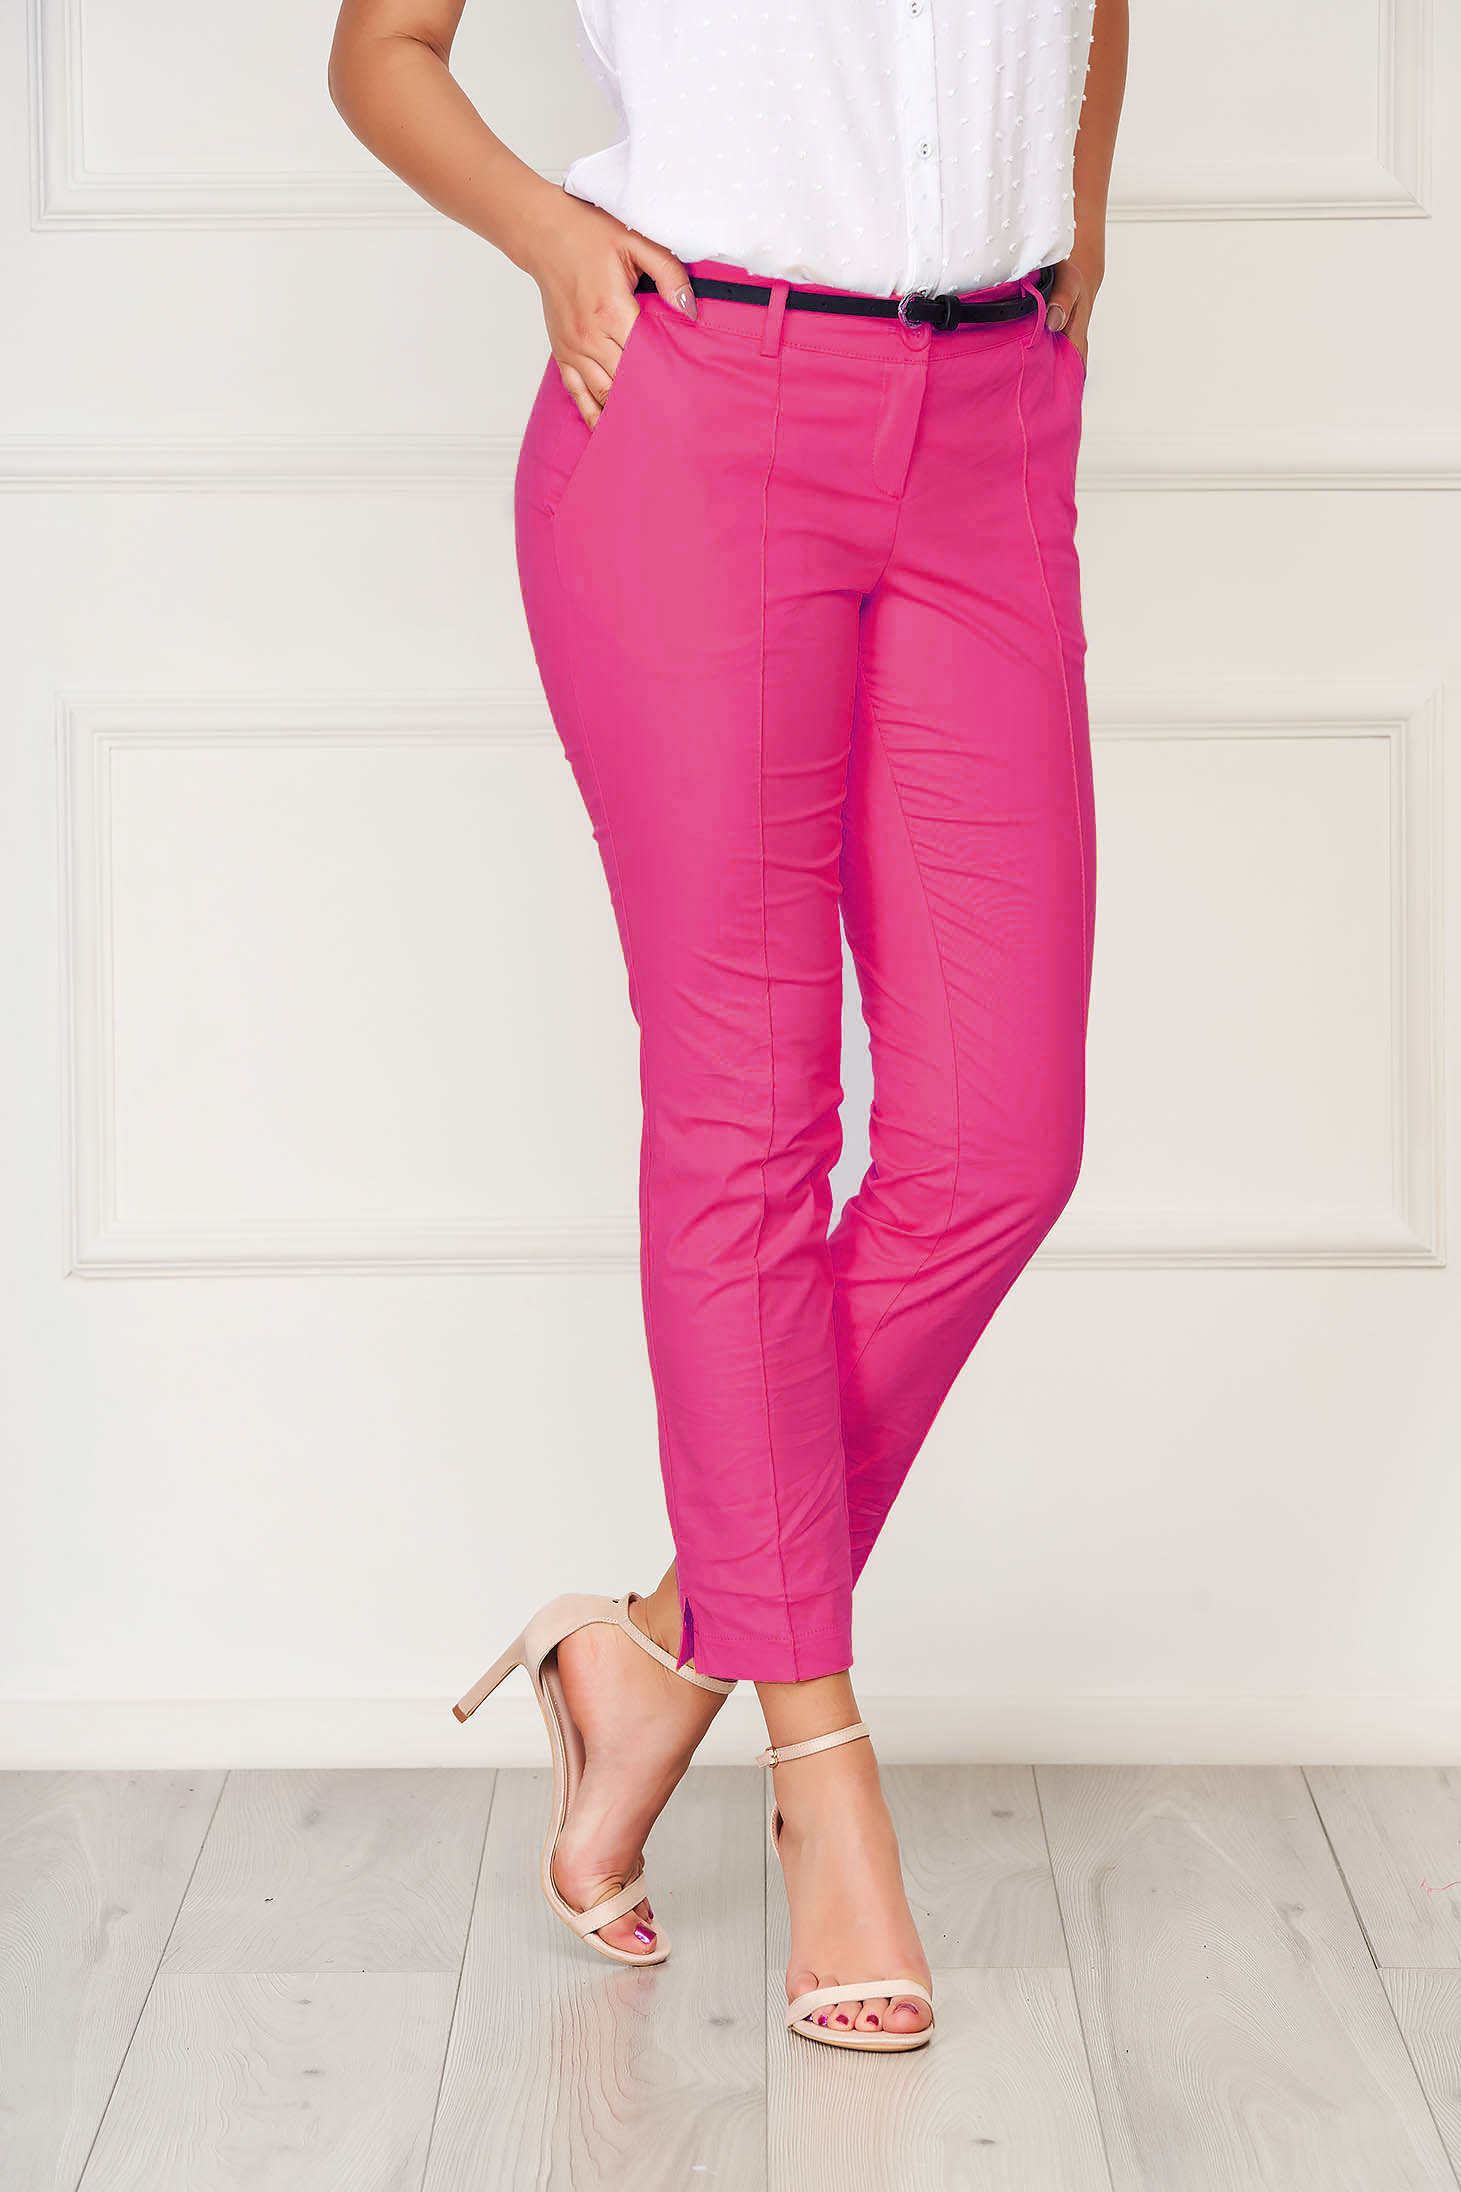 Fuchsia trousers office cotton conical with pockets